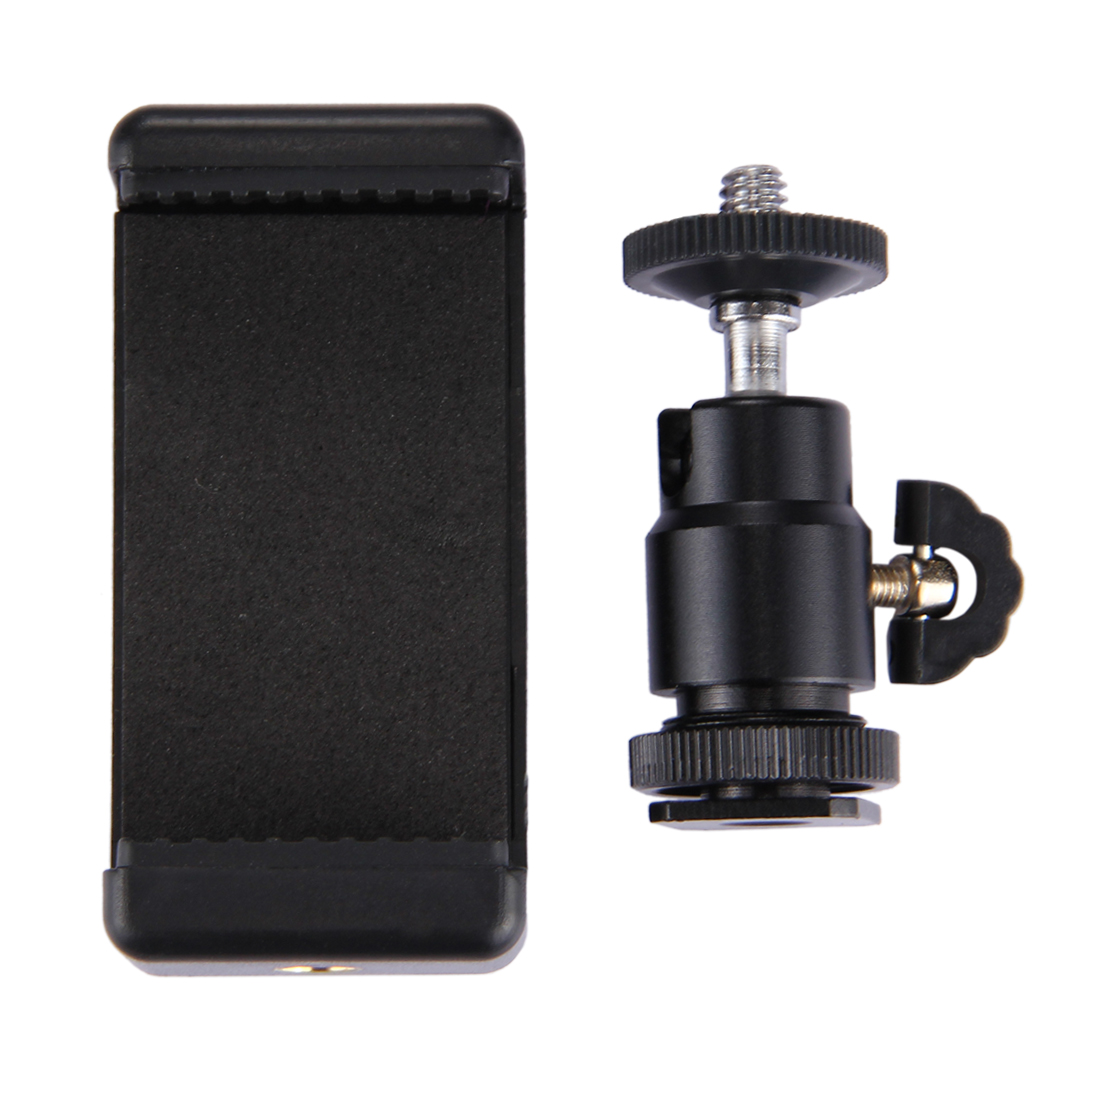 PULUZ PU214 Hot Shoe Tripod Head with Tripod Stand Clamp for iPhone Samsung Huawei Smartphones